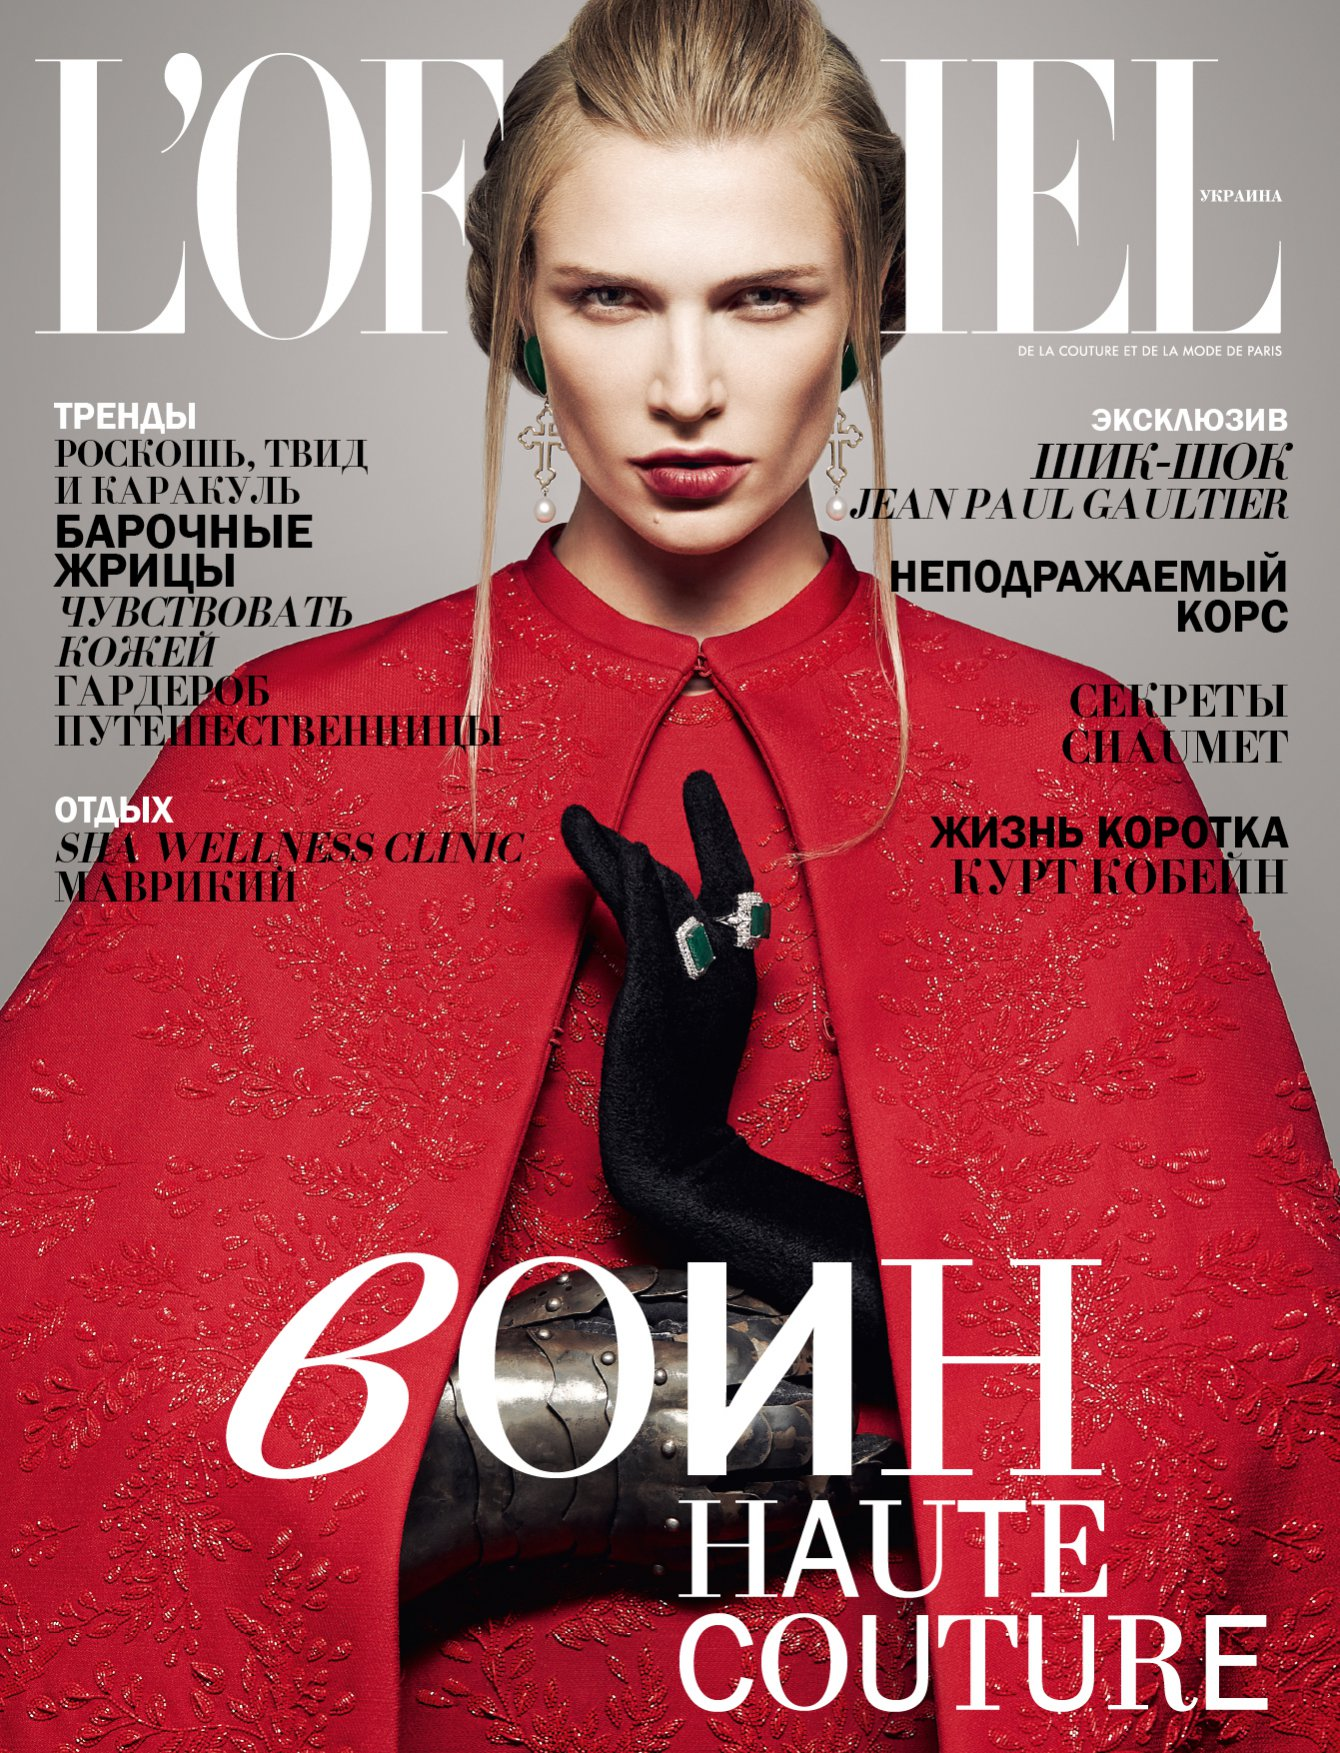 L'OFFICIEL UKRAINE oct 13 IRIS VAN HERPEN cover